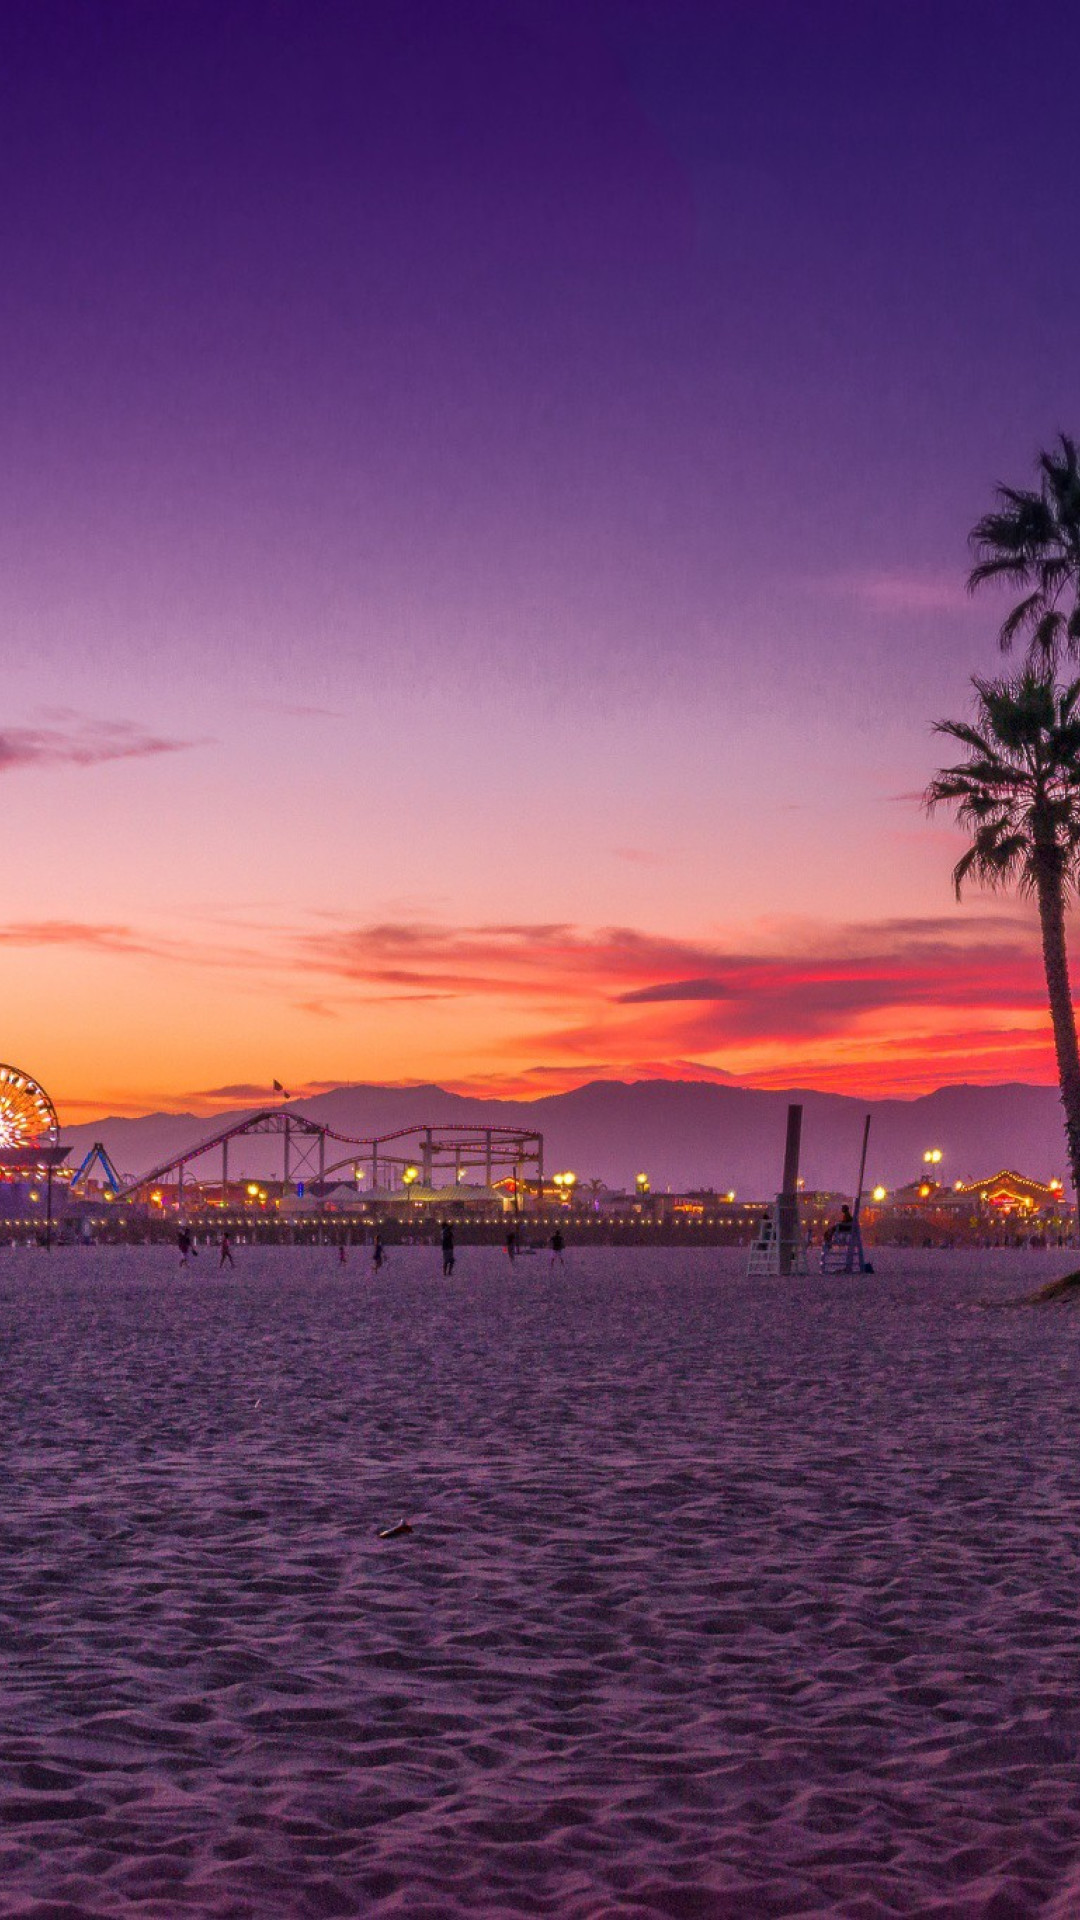 … backgrounds for la iphone background www 8backgrounds com; los angeles  sunset cityscapes the iphone wallpapers …